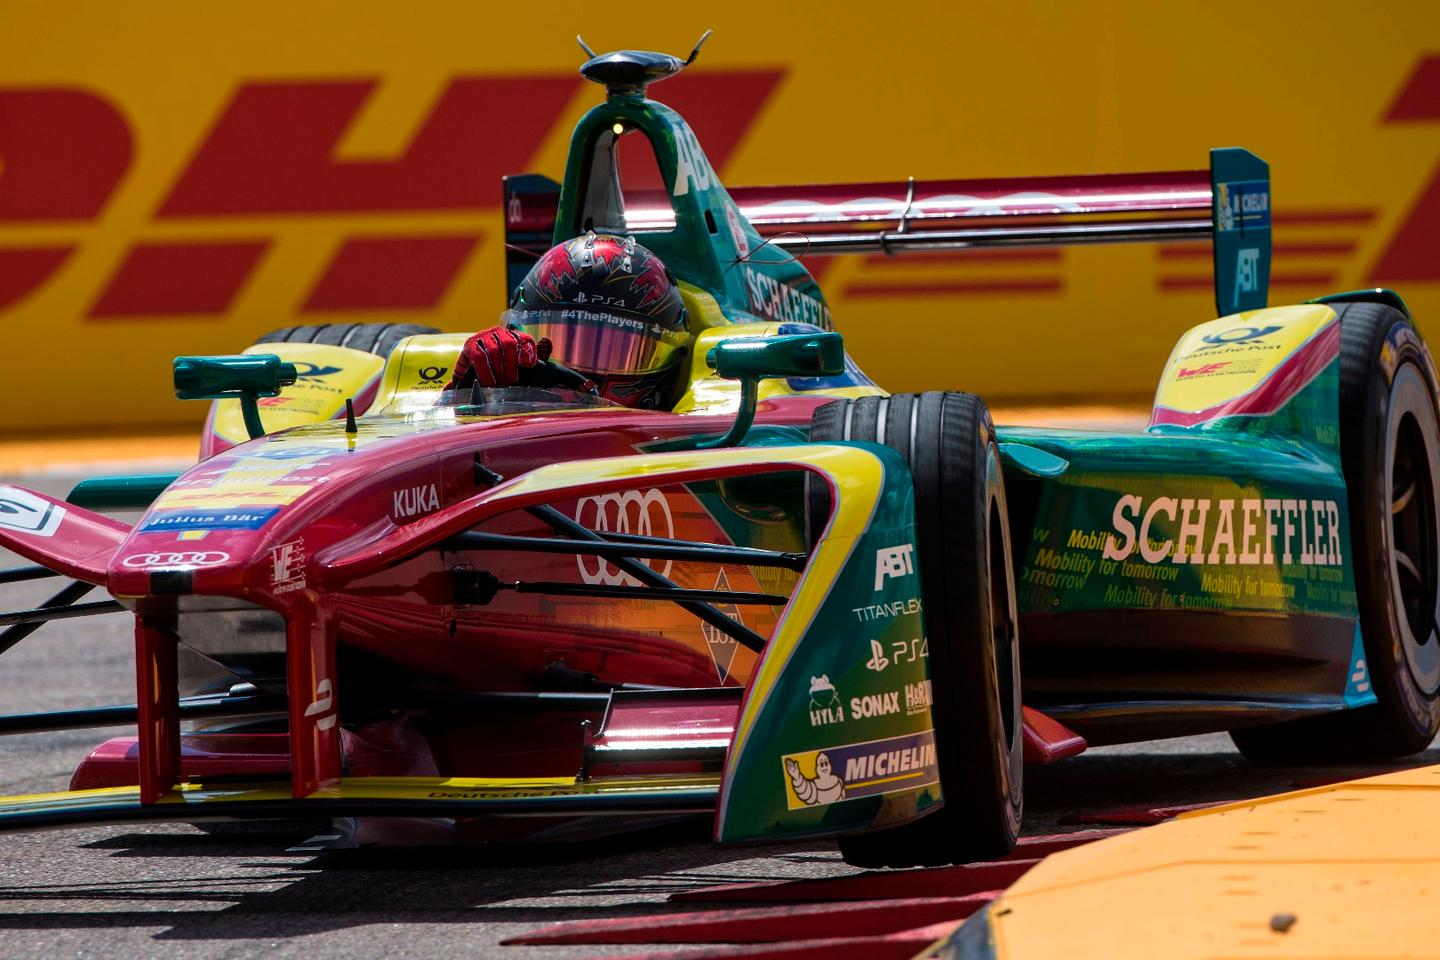 Audi will be the first German manufacturer to have a factory-backed entry in Formula E